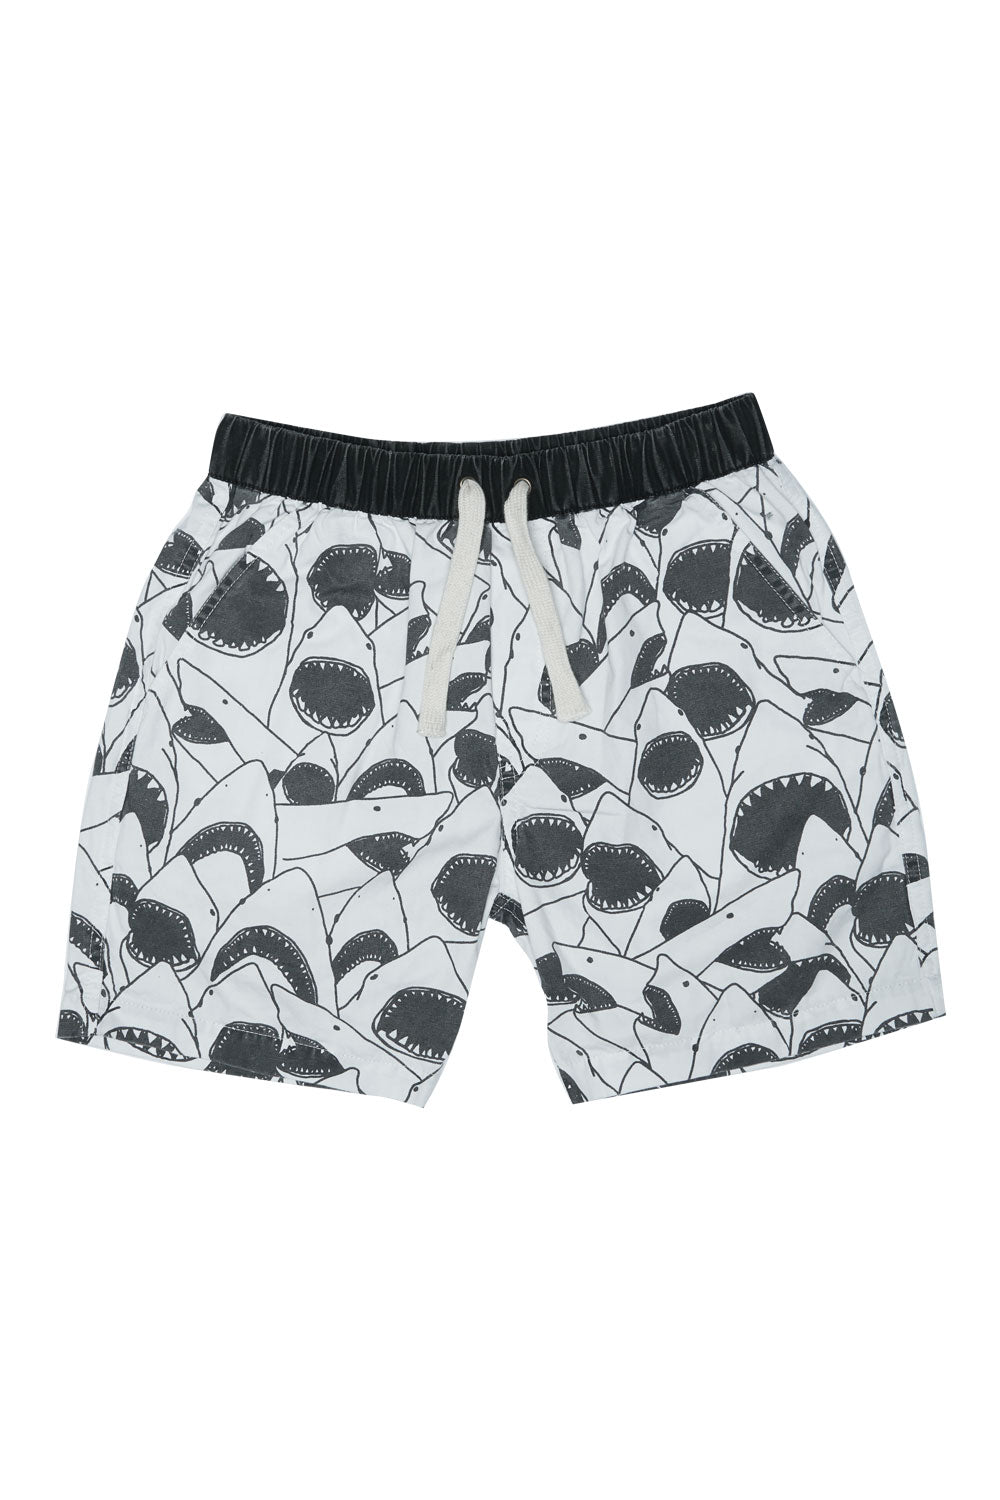 SHARK WALK SHORT WHITE